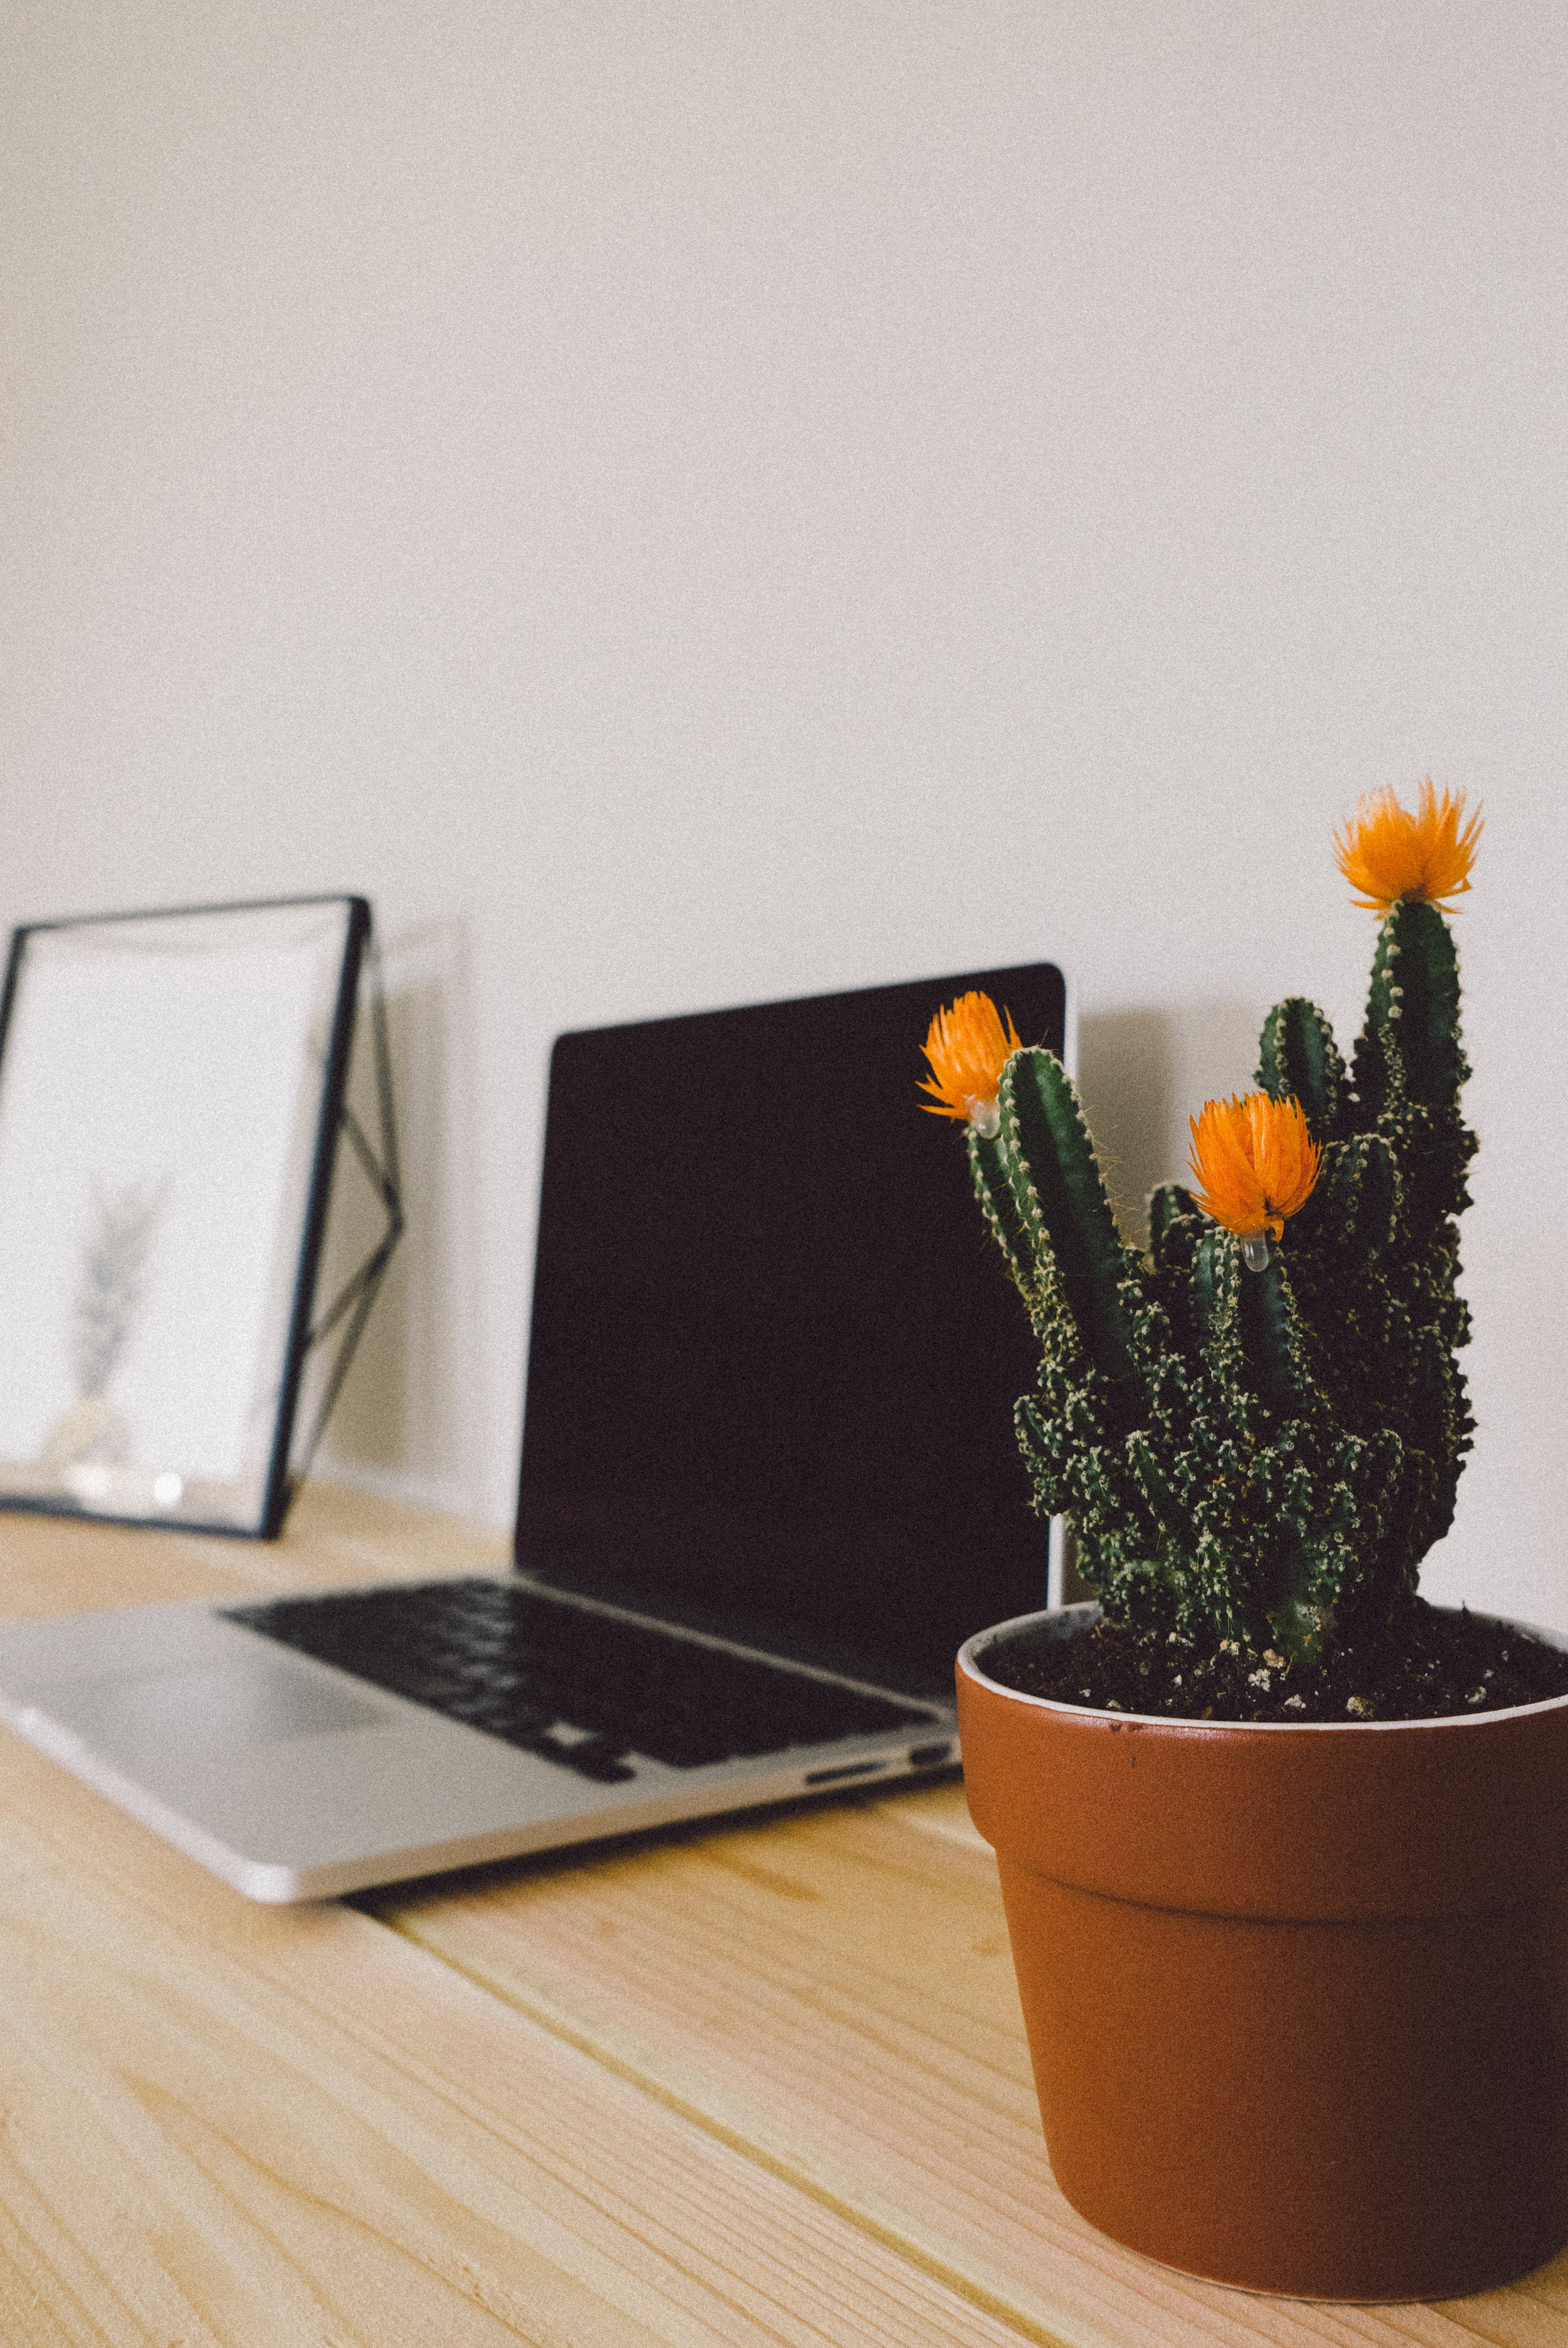 Turned-off Macbook Pro Beside Potted Green Cactus